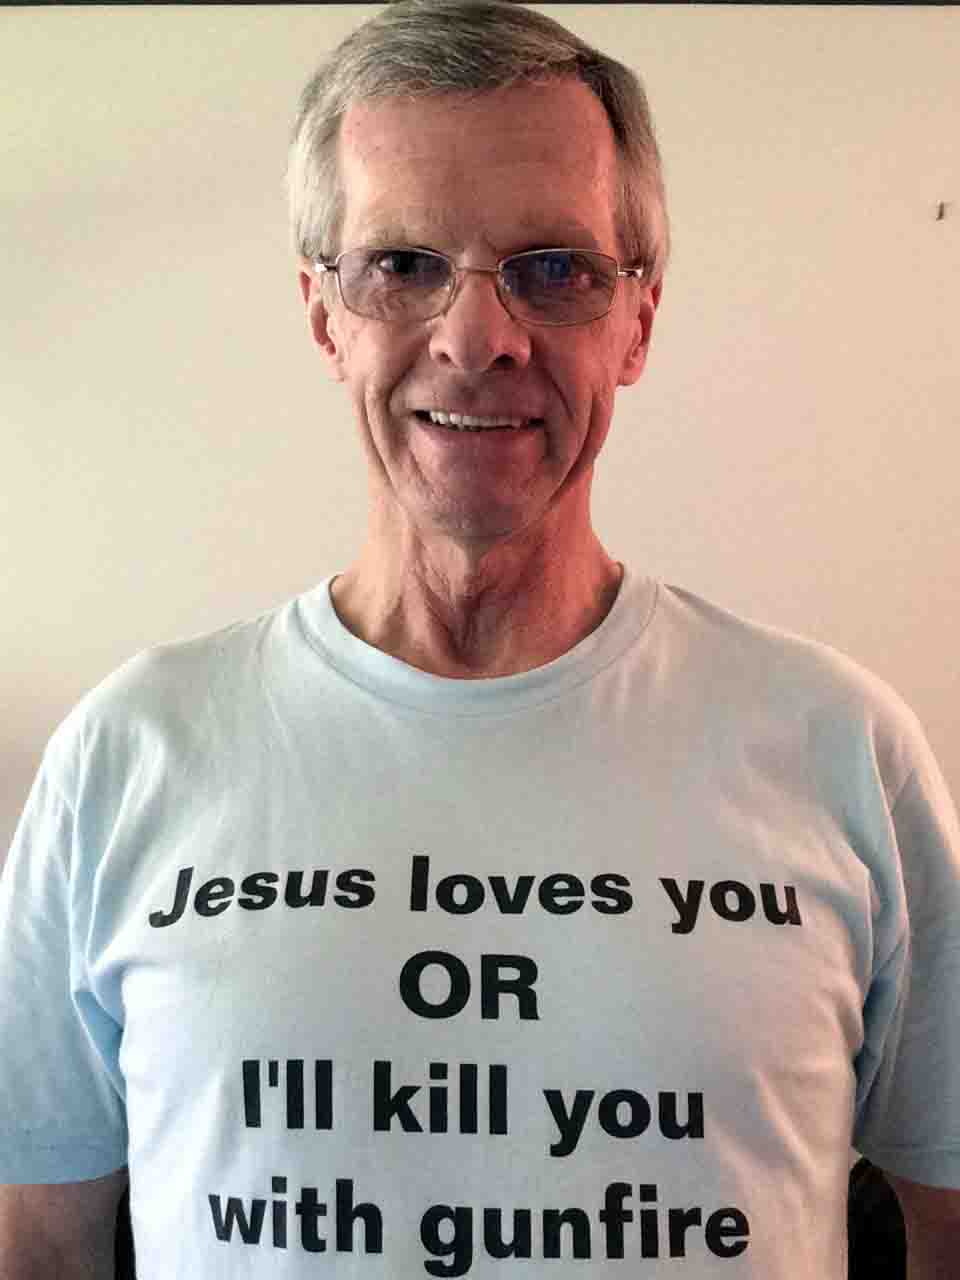 Darwin Bedford wearing his shirt that says 'Jesus loves you OR I will kill you with gunfire'